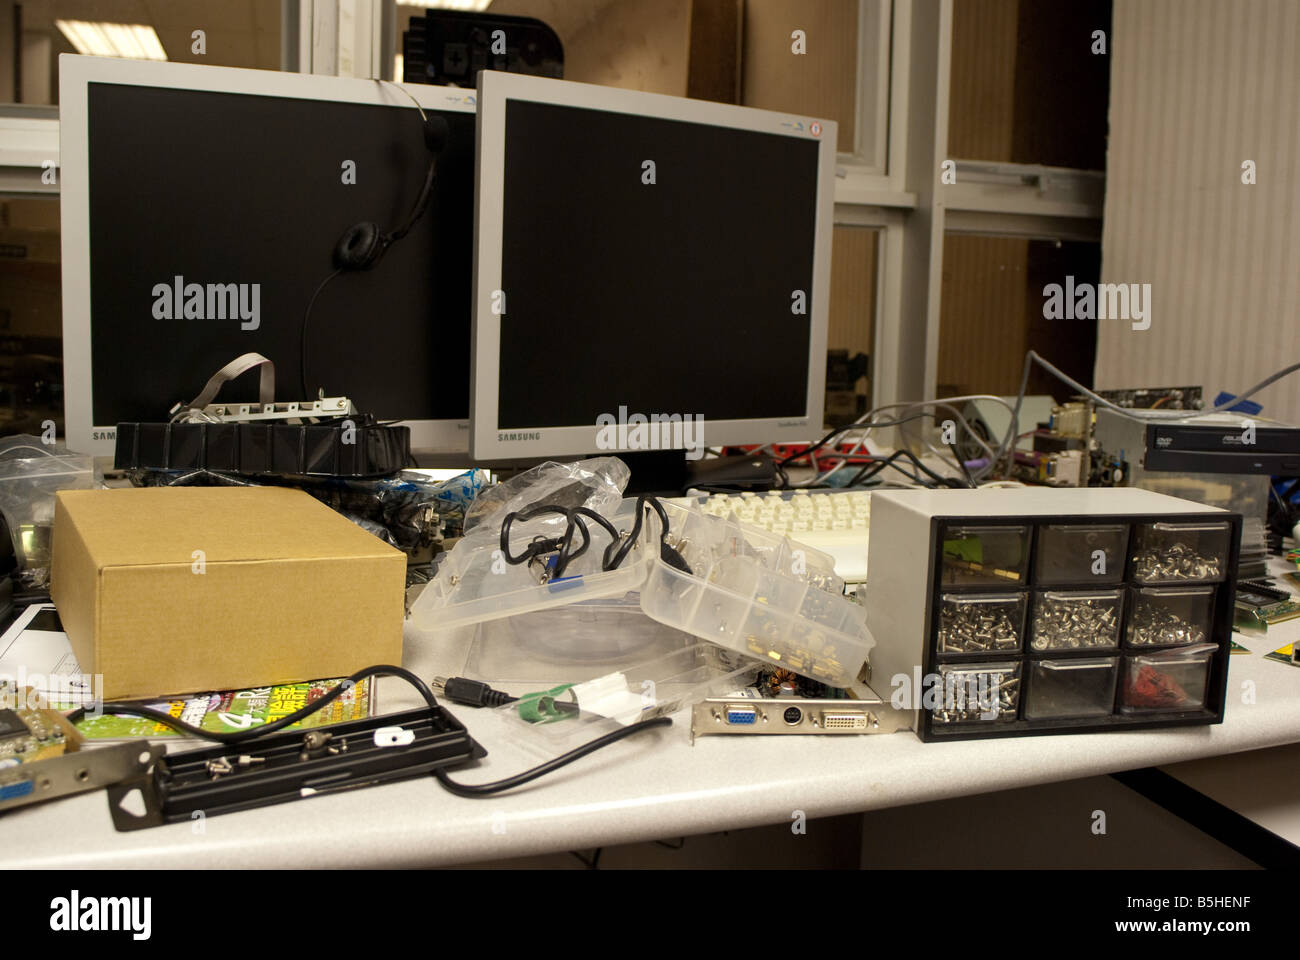 IT Computer Mess - Stock Image